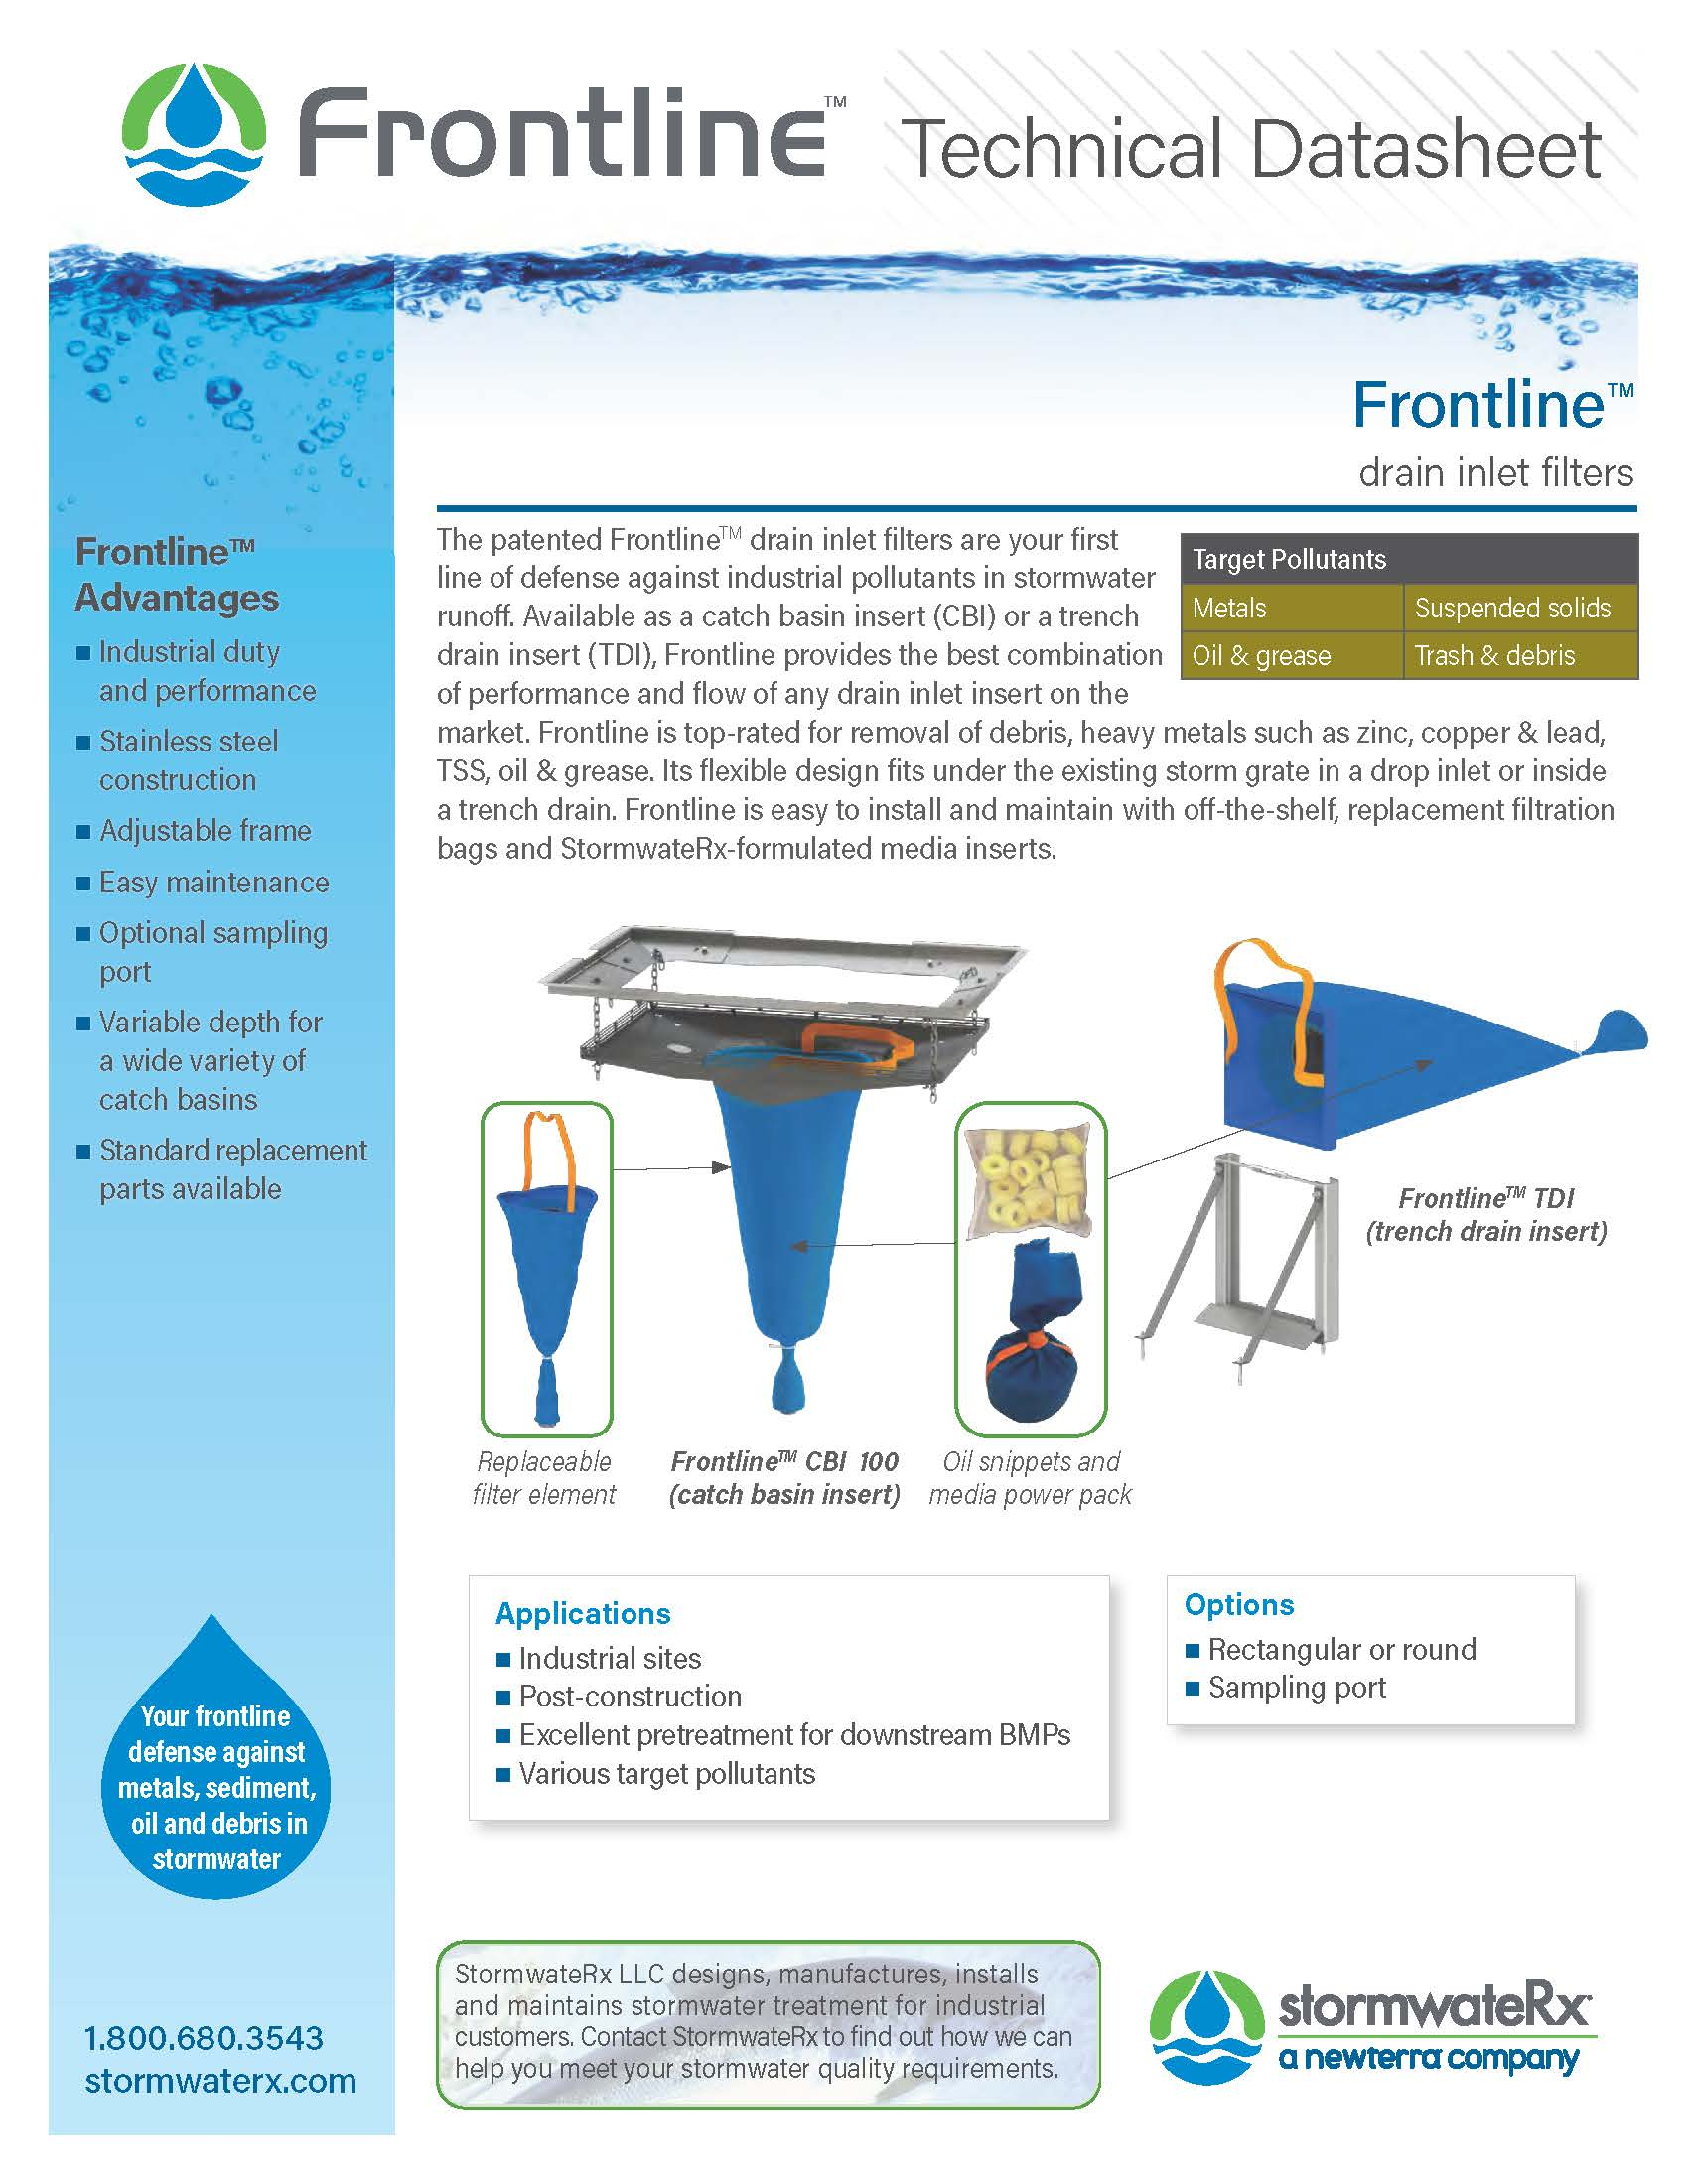 Frontline Drain Inlet Filters